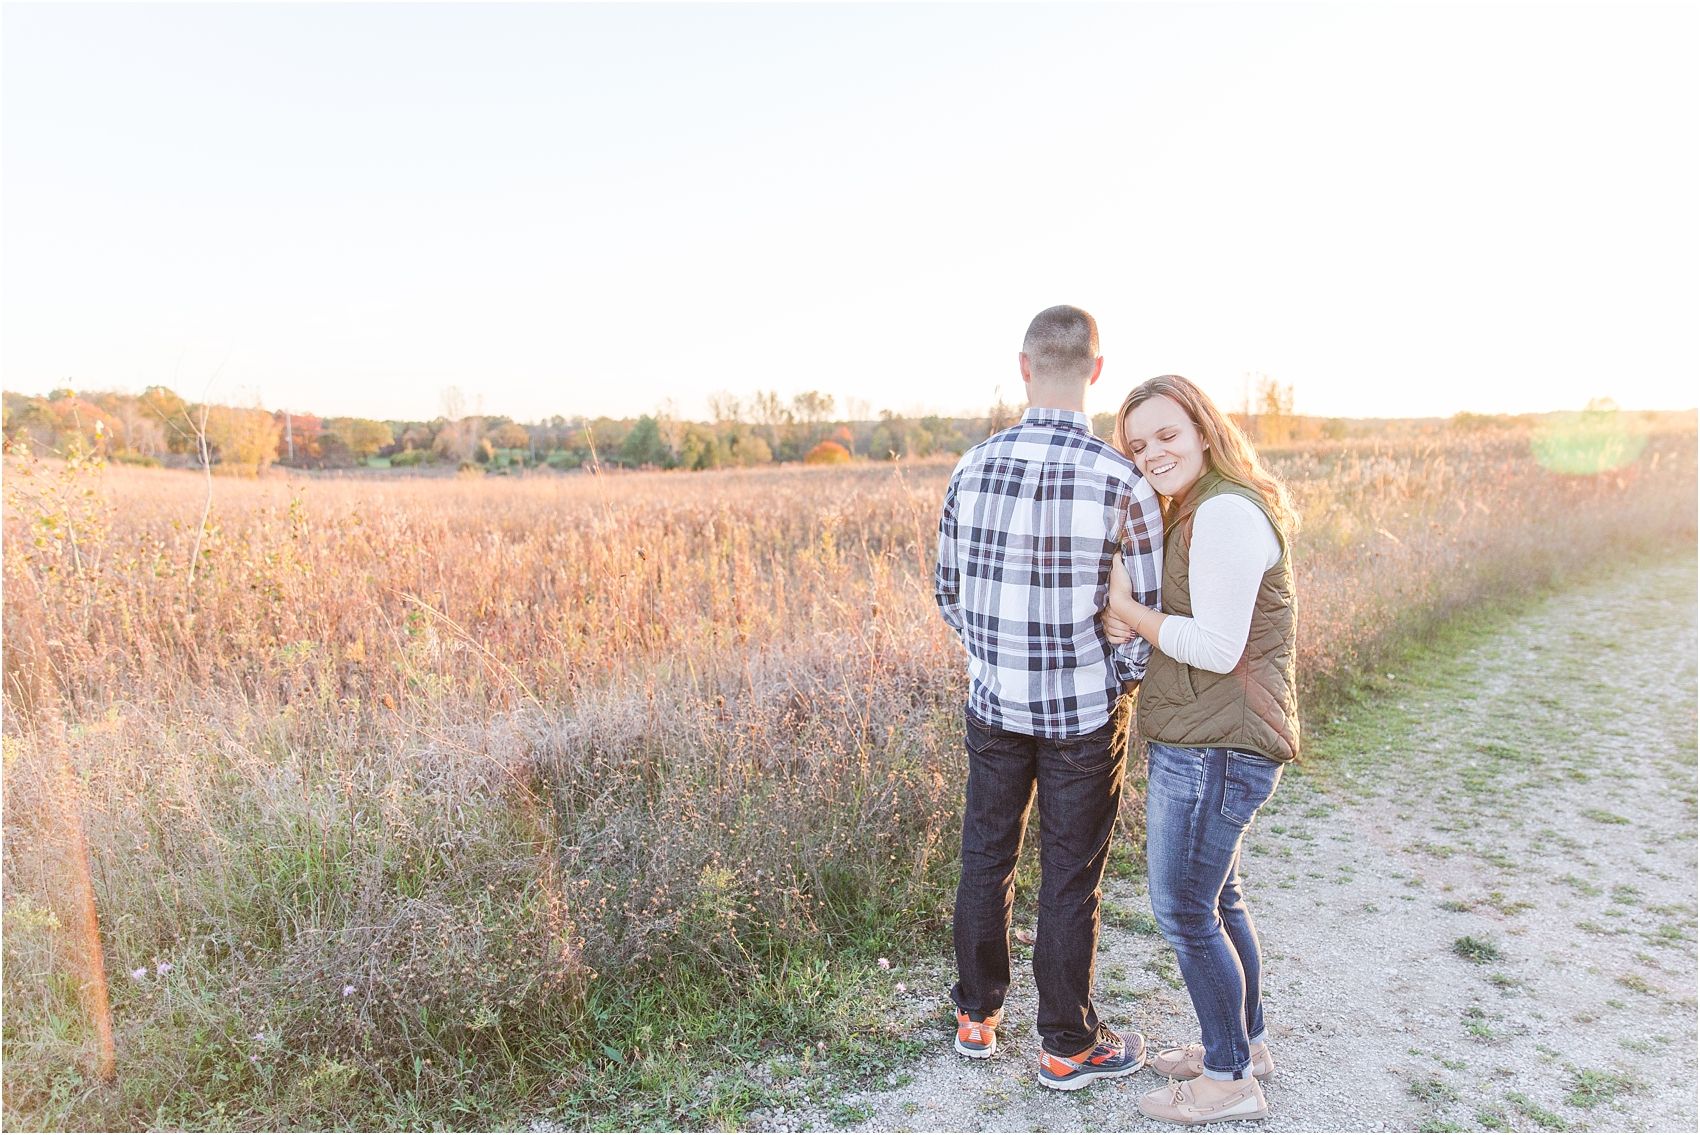 romantic-fall-engagement-photos-at-indian-springs-metropark-in-clarkston-mi-by-courtney-carolyn-photography_0023.jpg